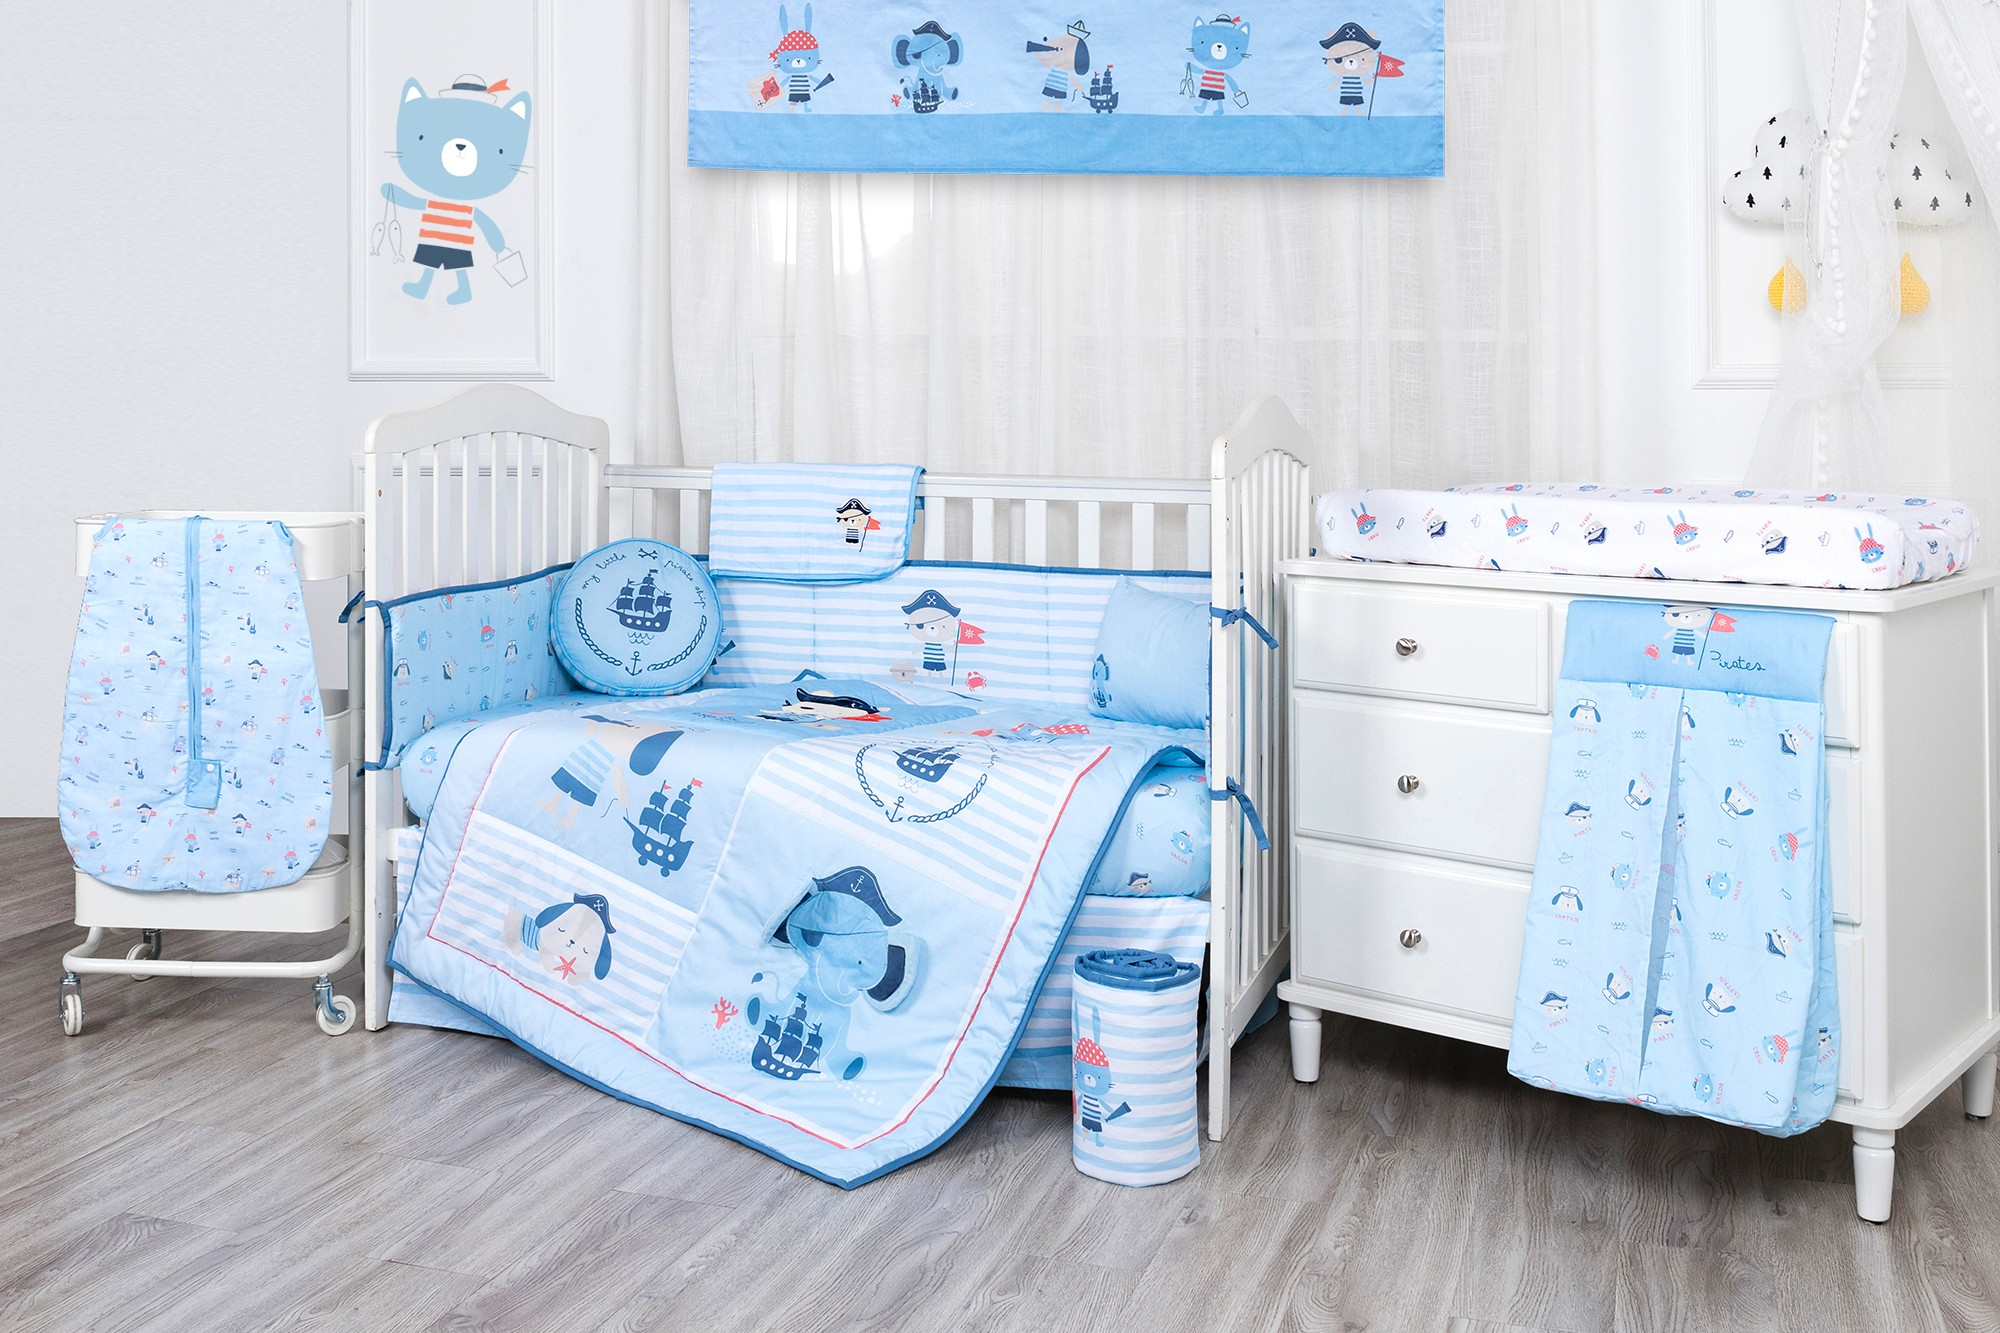 Pirate ship blue baby crib bedding set boy Cartoon elephant theme 100% cotton bedding set